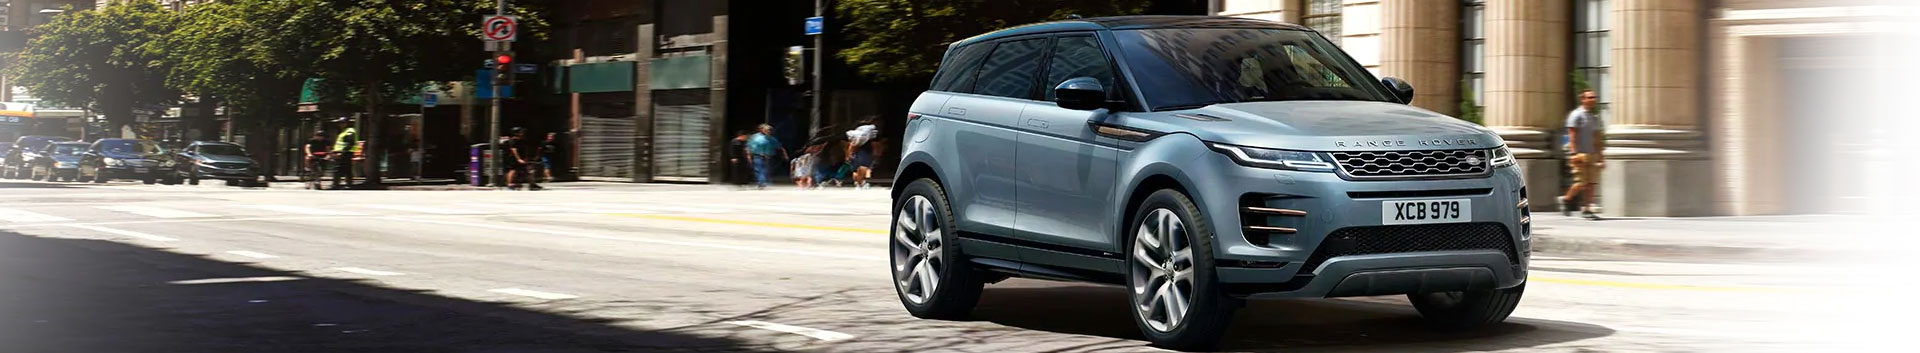 Land Rover Evoque header image